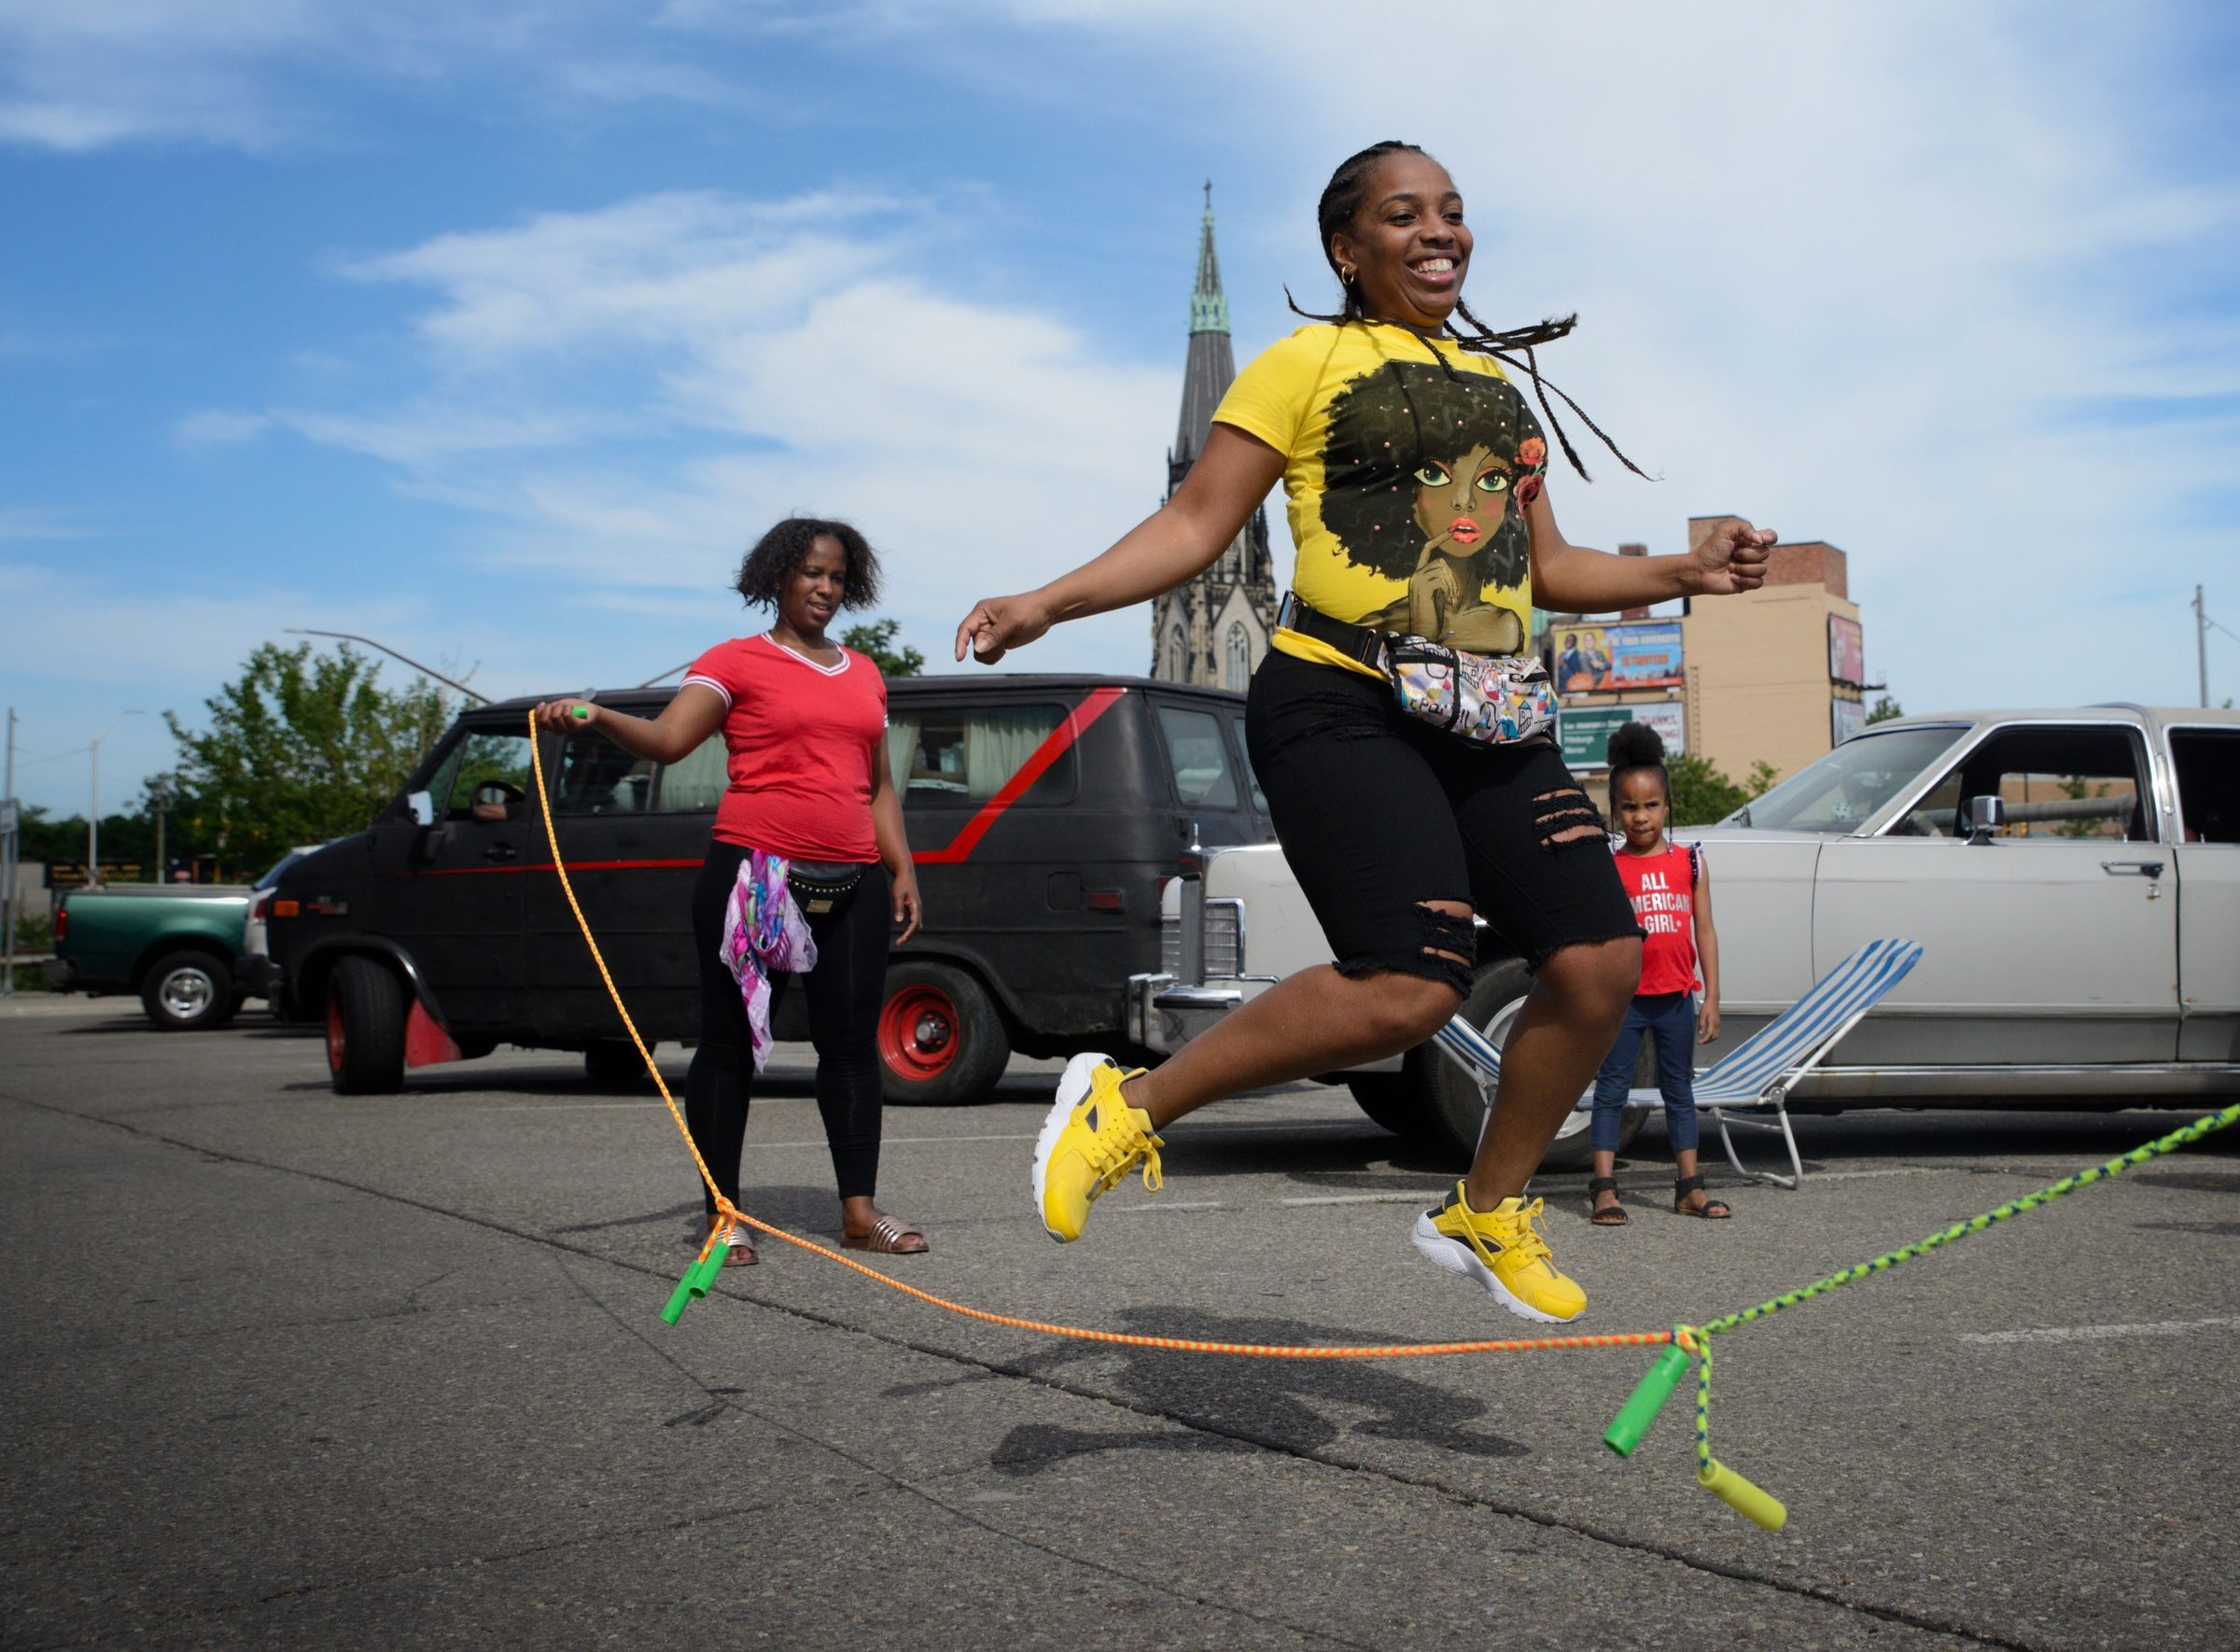 Mina Powell of Southfield skips rope at Eastern Market before the 2018 Ford Fireworks in Detroit on Monday, June 25, 2018.